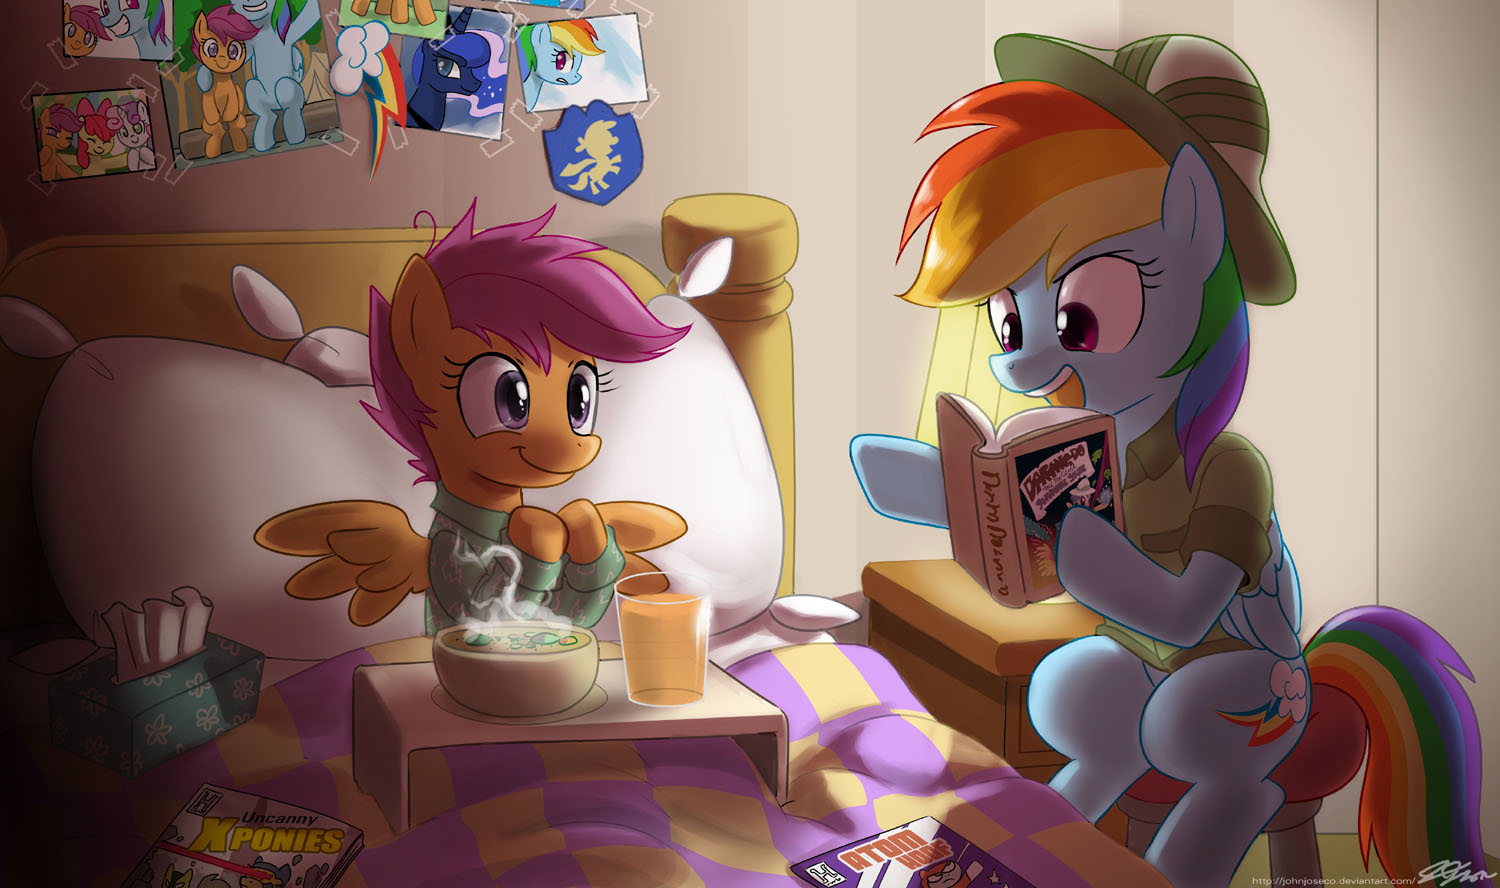 Dashie Reading To A Sick Scootaloo My Little Pony Friendship Is Magic Know Your Meme Get inspired and use them to your benefit. little pony friendship is magic